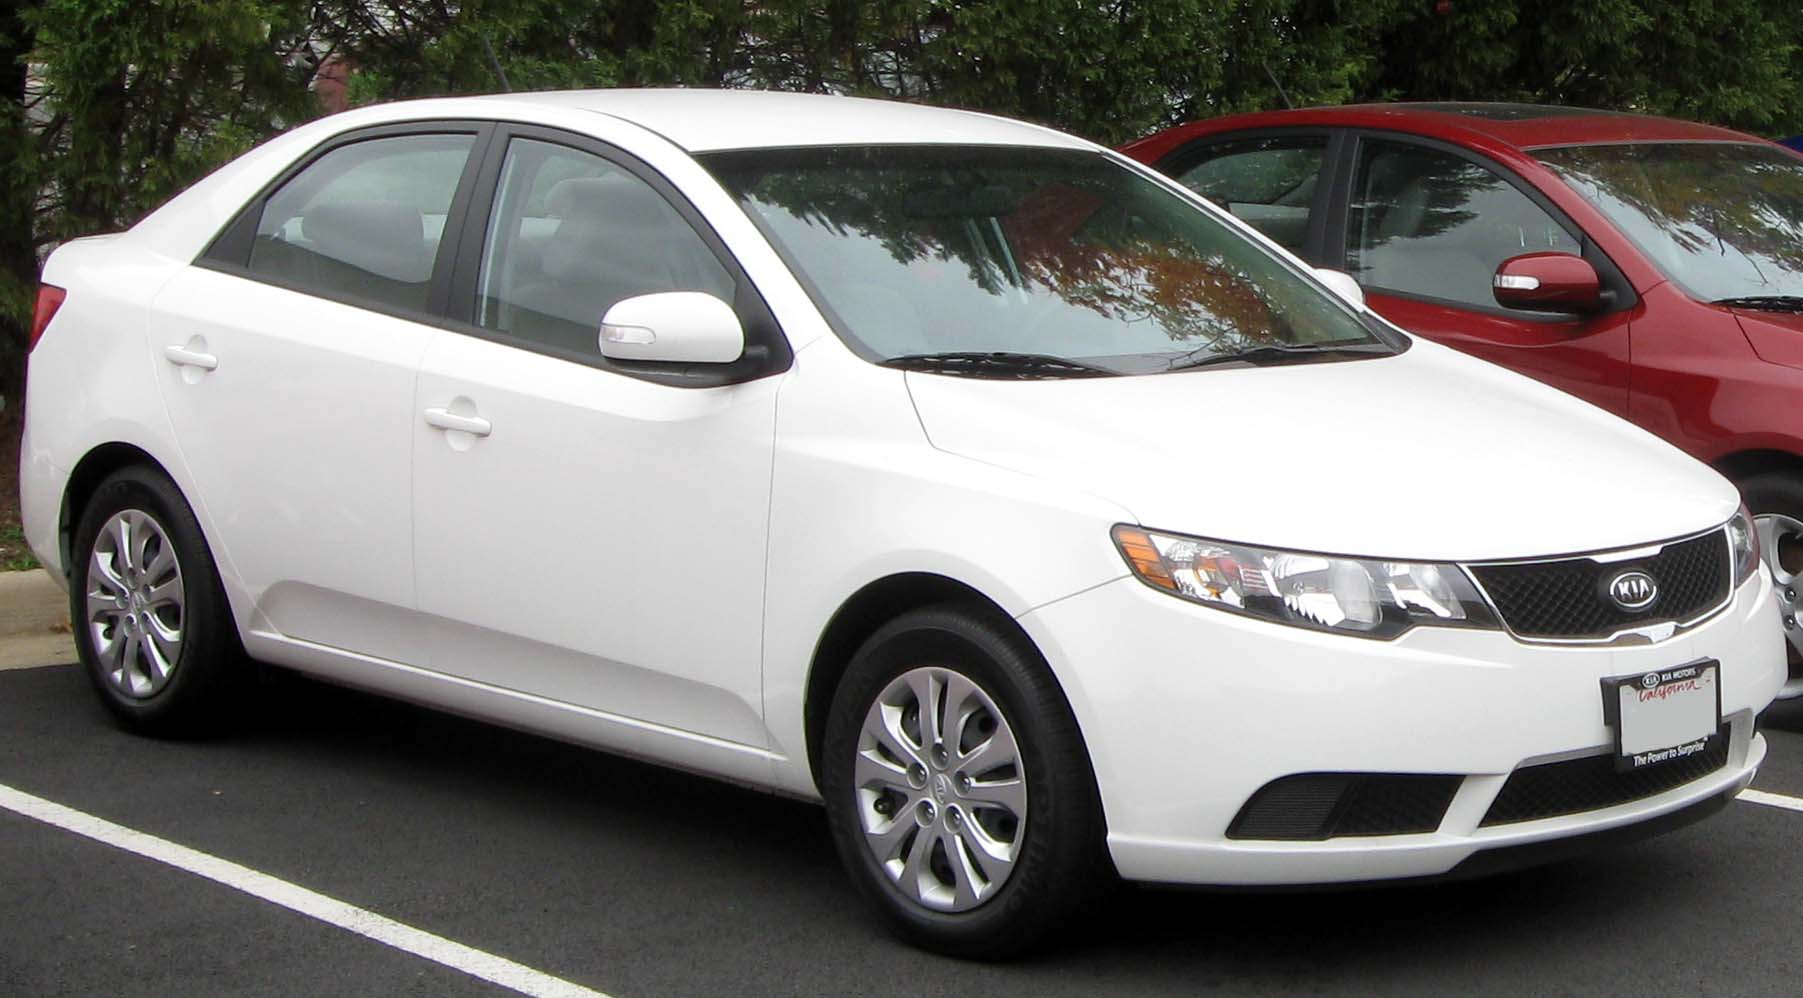 Kia Forte EX HD quality defination Wallpaper Gallery Free